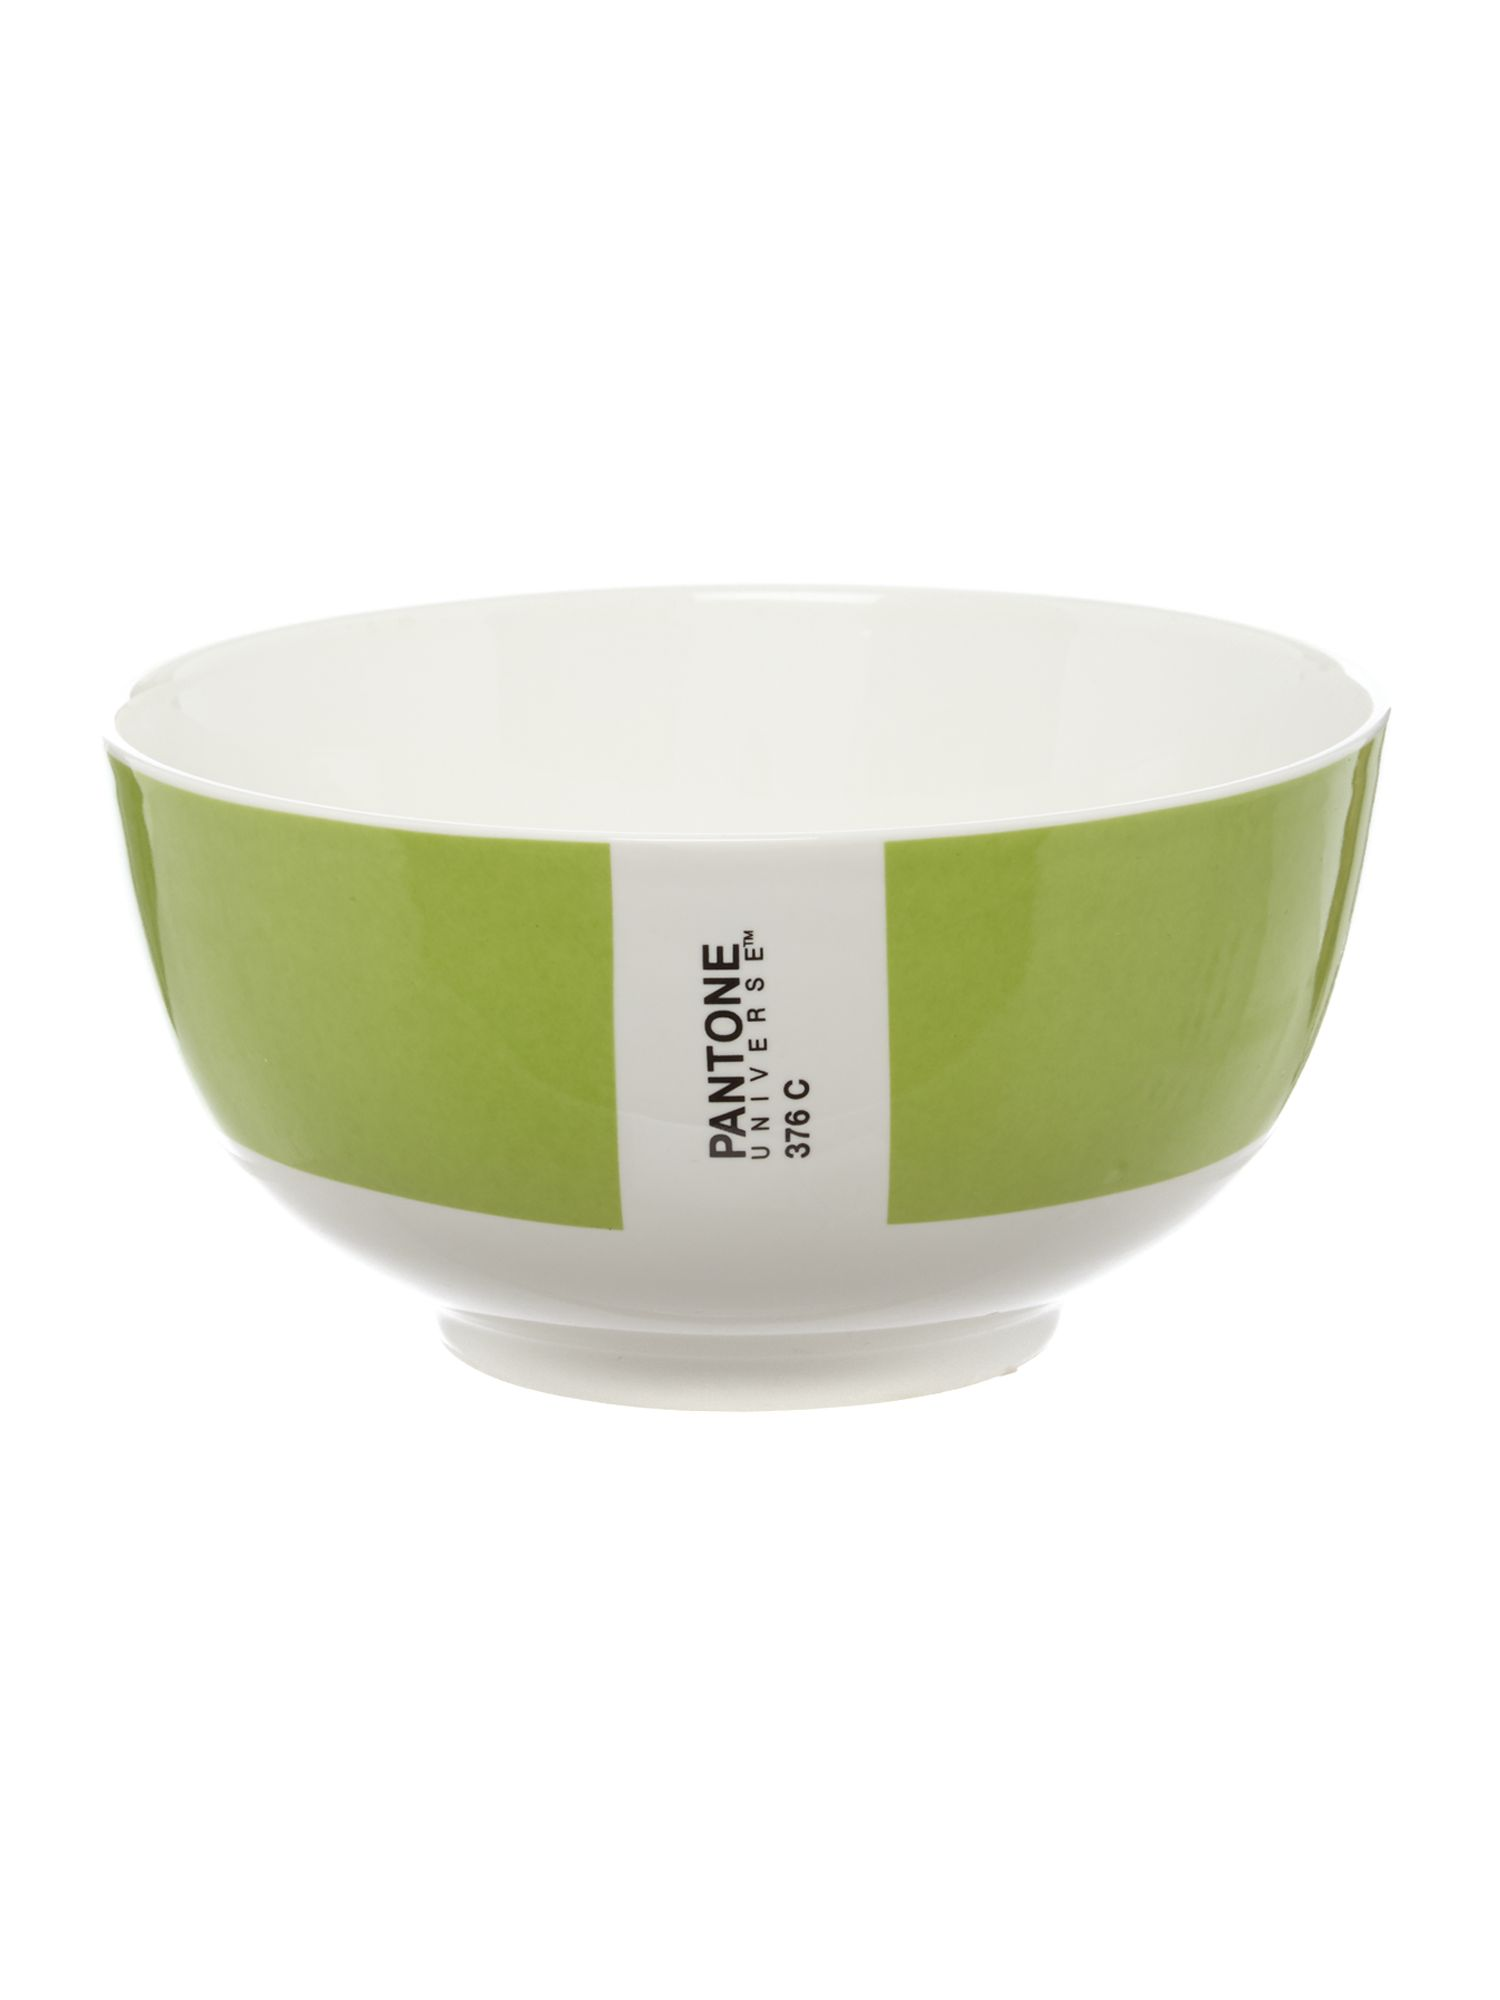 Image of Pantone Bowl luca trazzi bright green